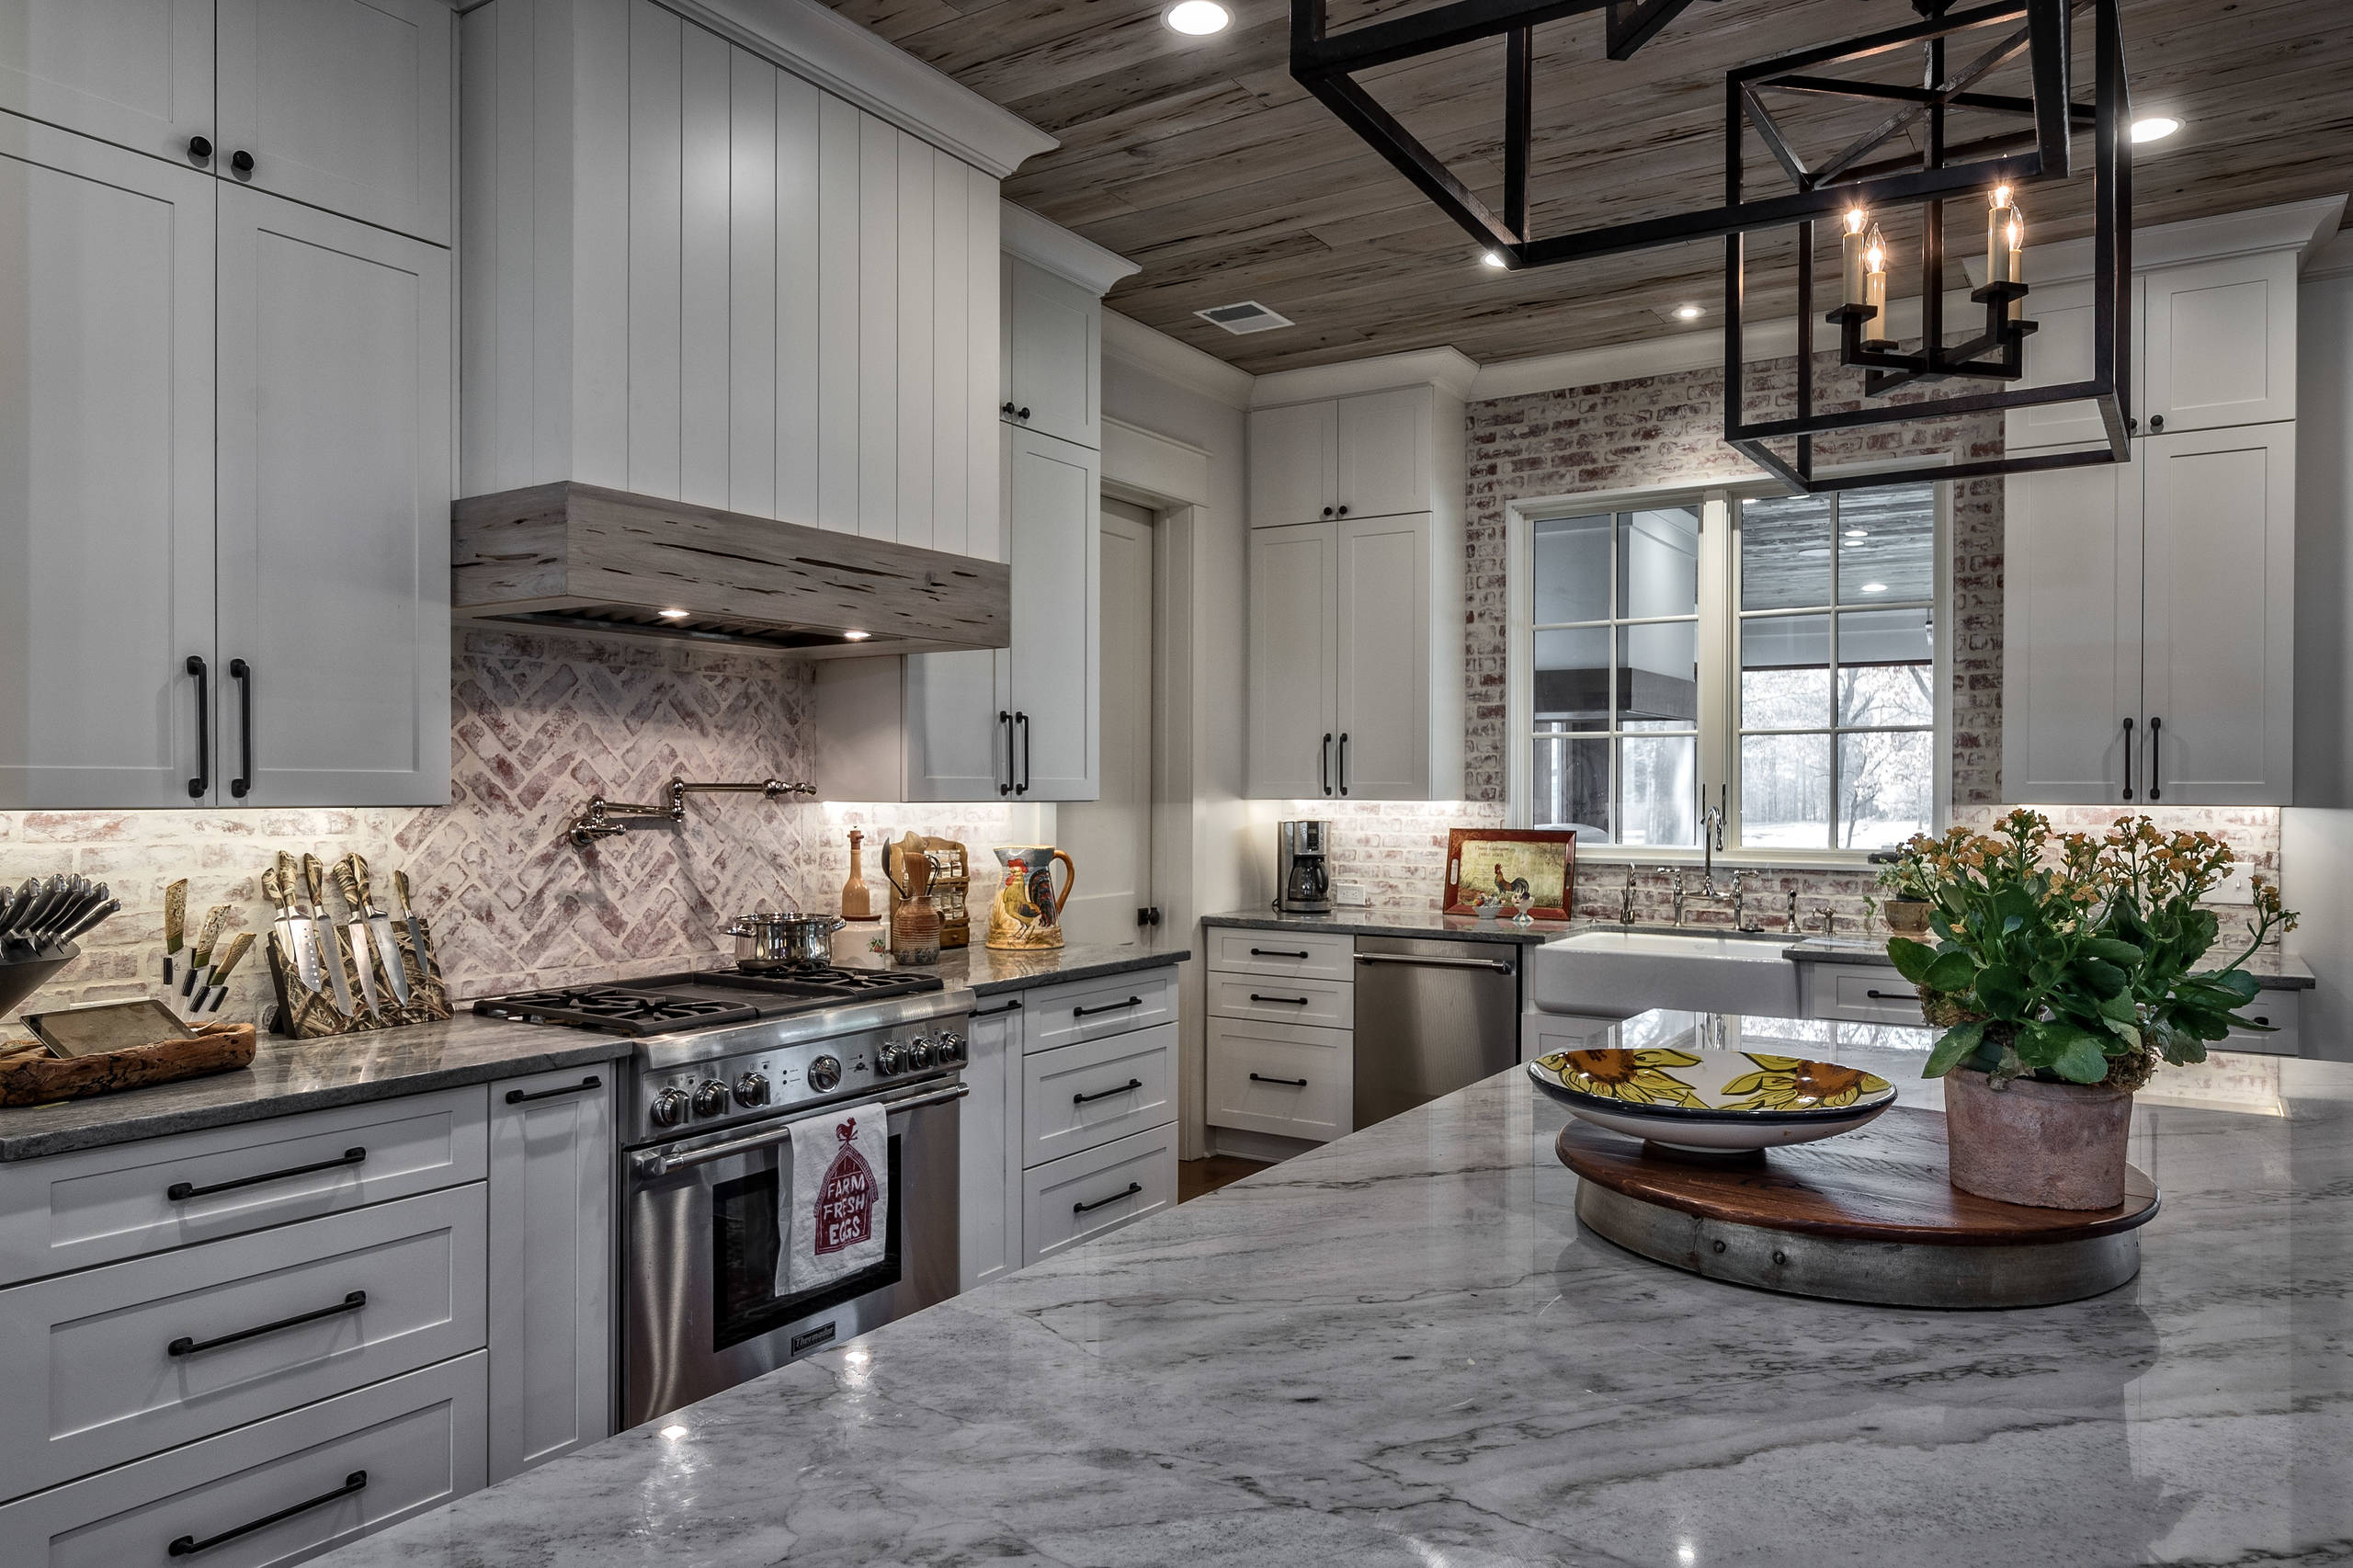 75 Beautiful Rustic Gray Kitchen Pictures Ideas April 2021 Houzz